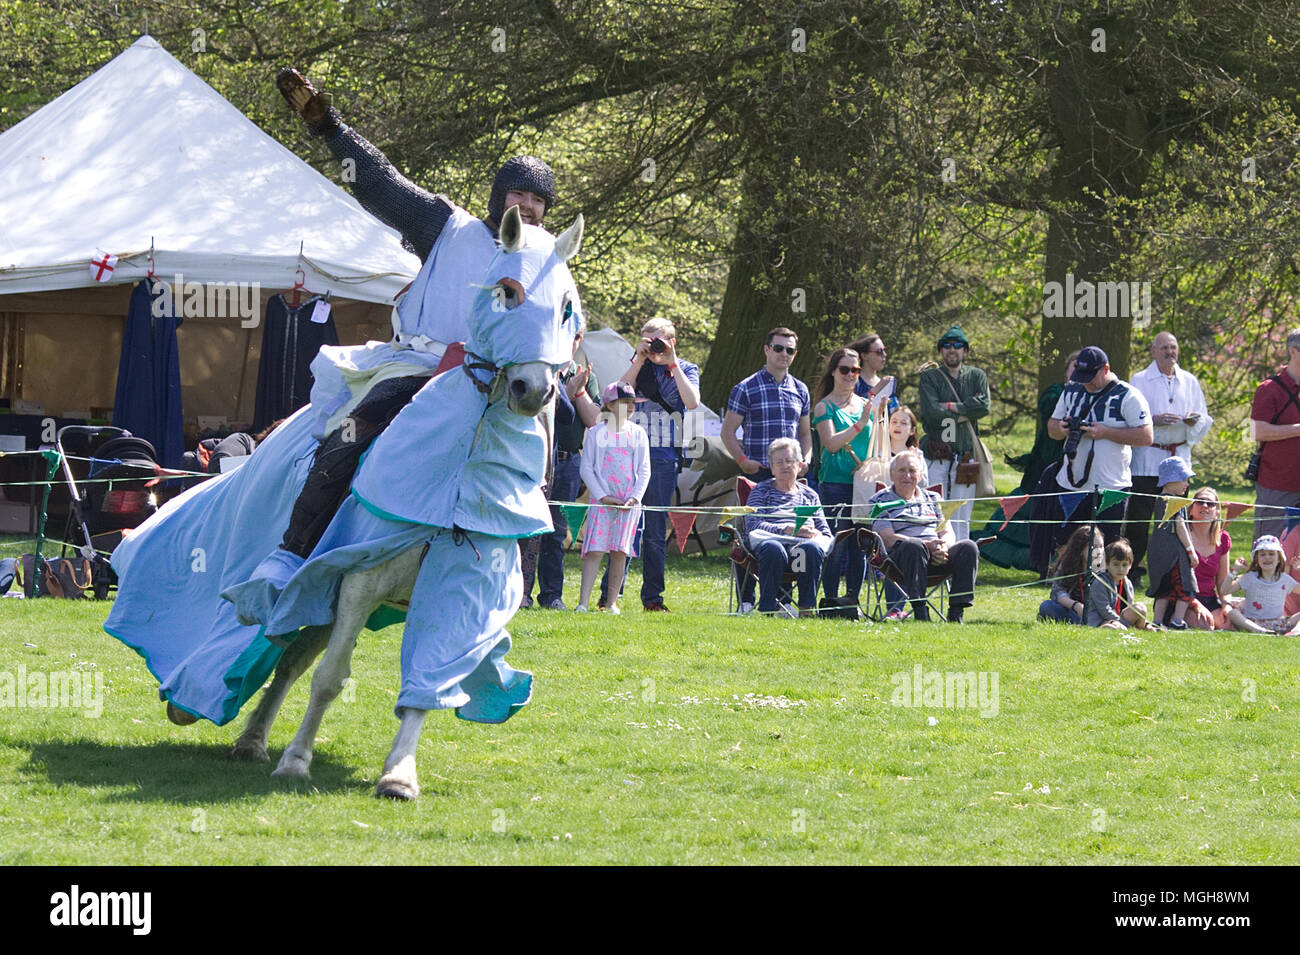 The kings Knights showing off equestrian skills at the royal joust - Stock Image